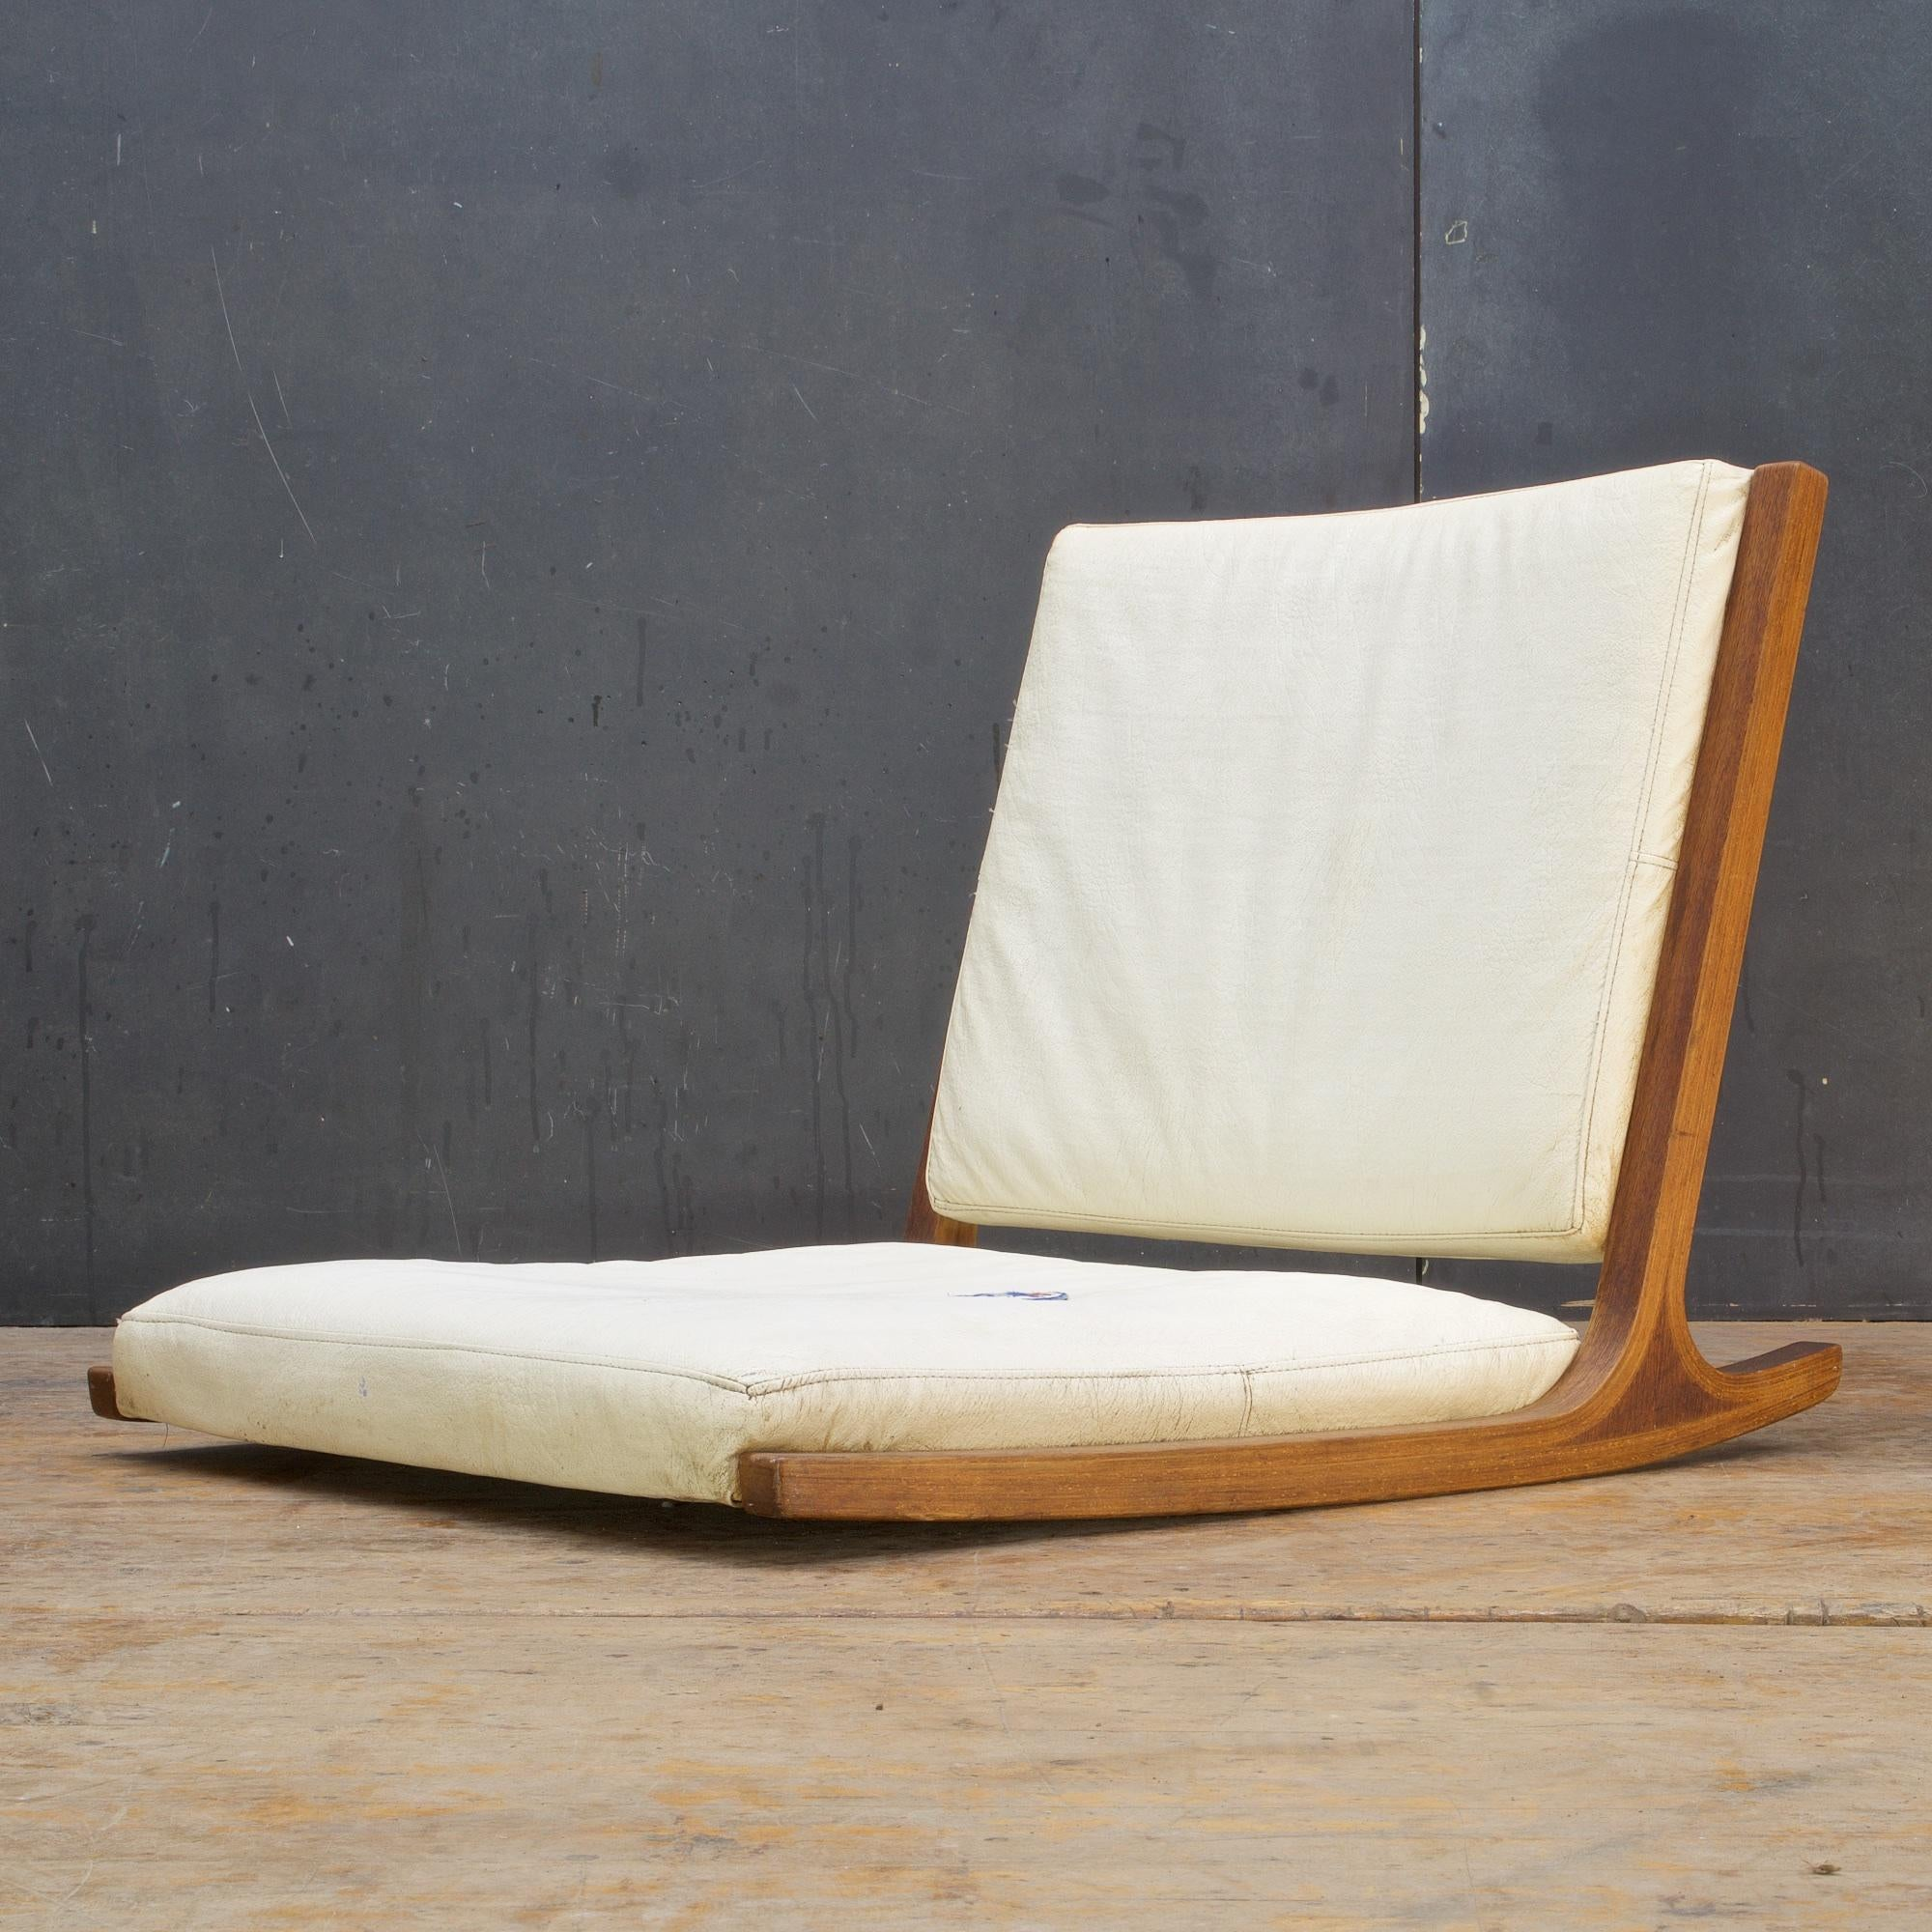 Japanese Chair Midcentury Japanese Tamtami Rocking Lounge Chair Kenzo Tarumi Junzo Sakakura